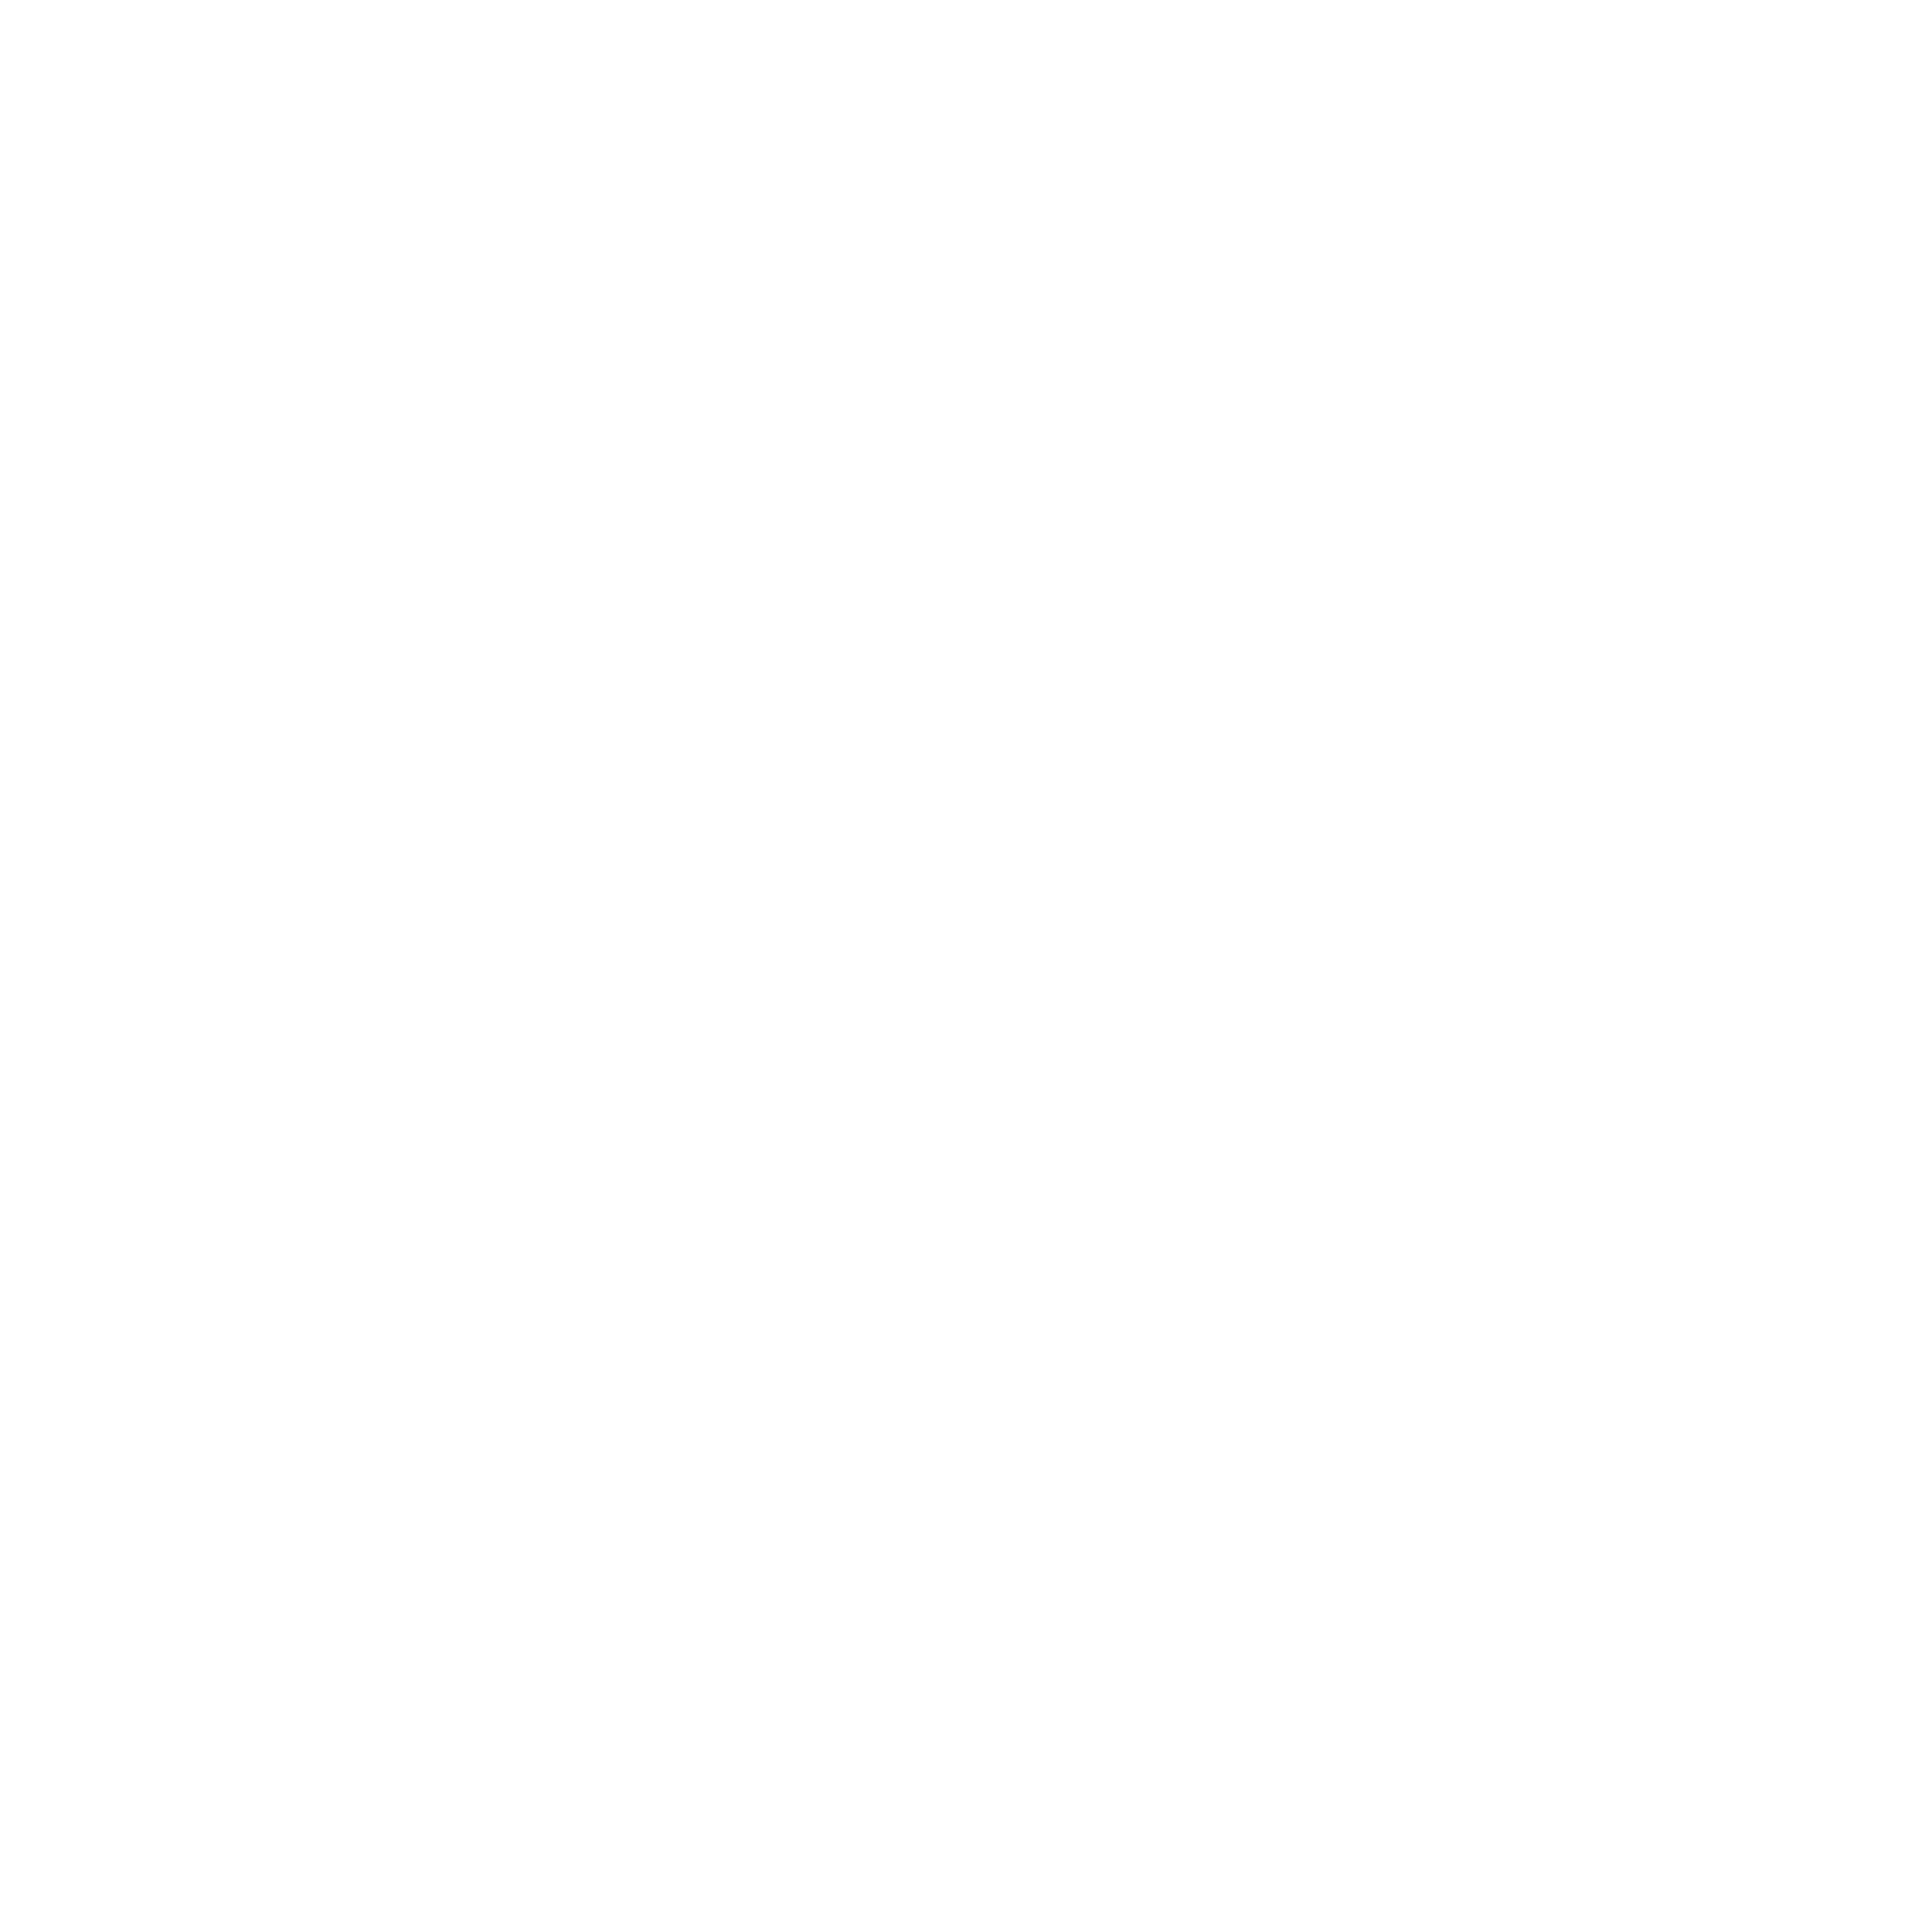 Helen-Murray-Logo-White-Transparent.png